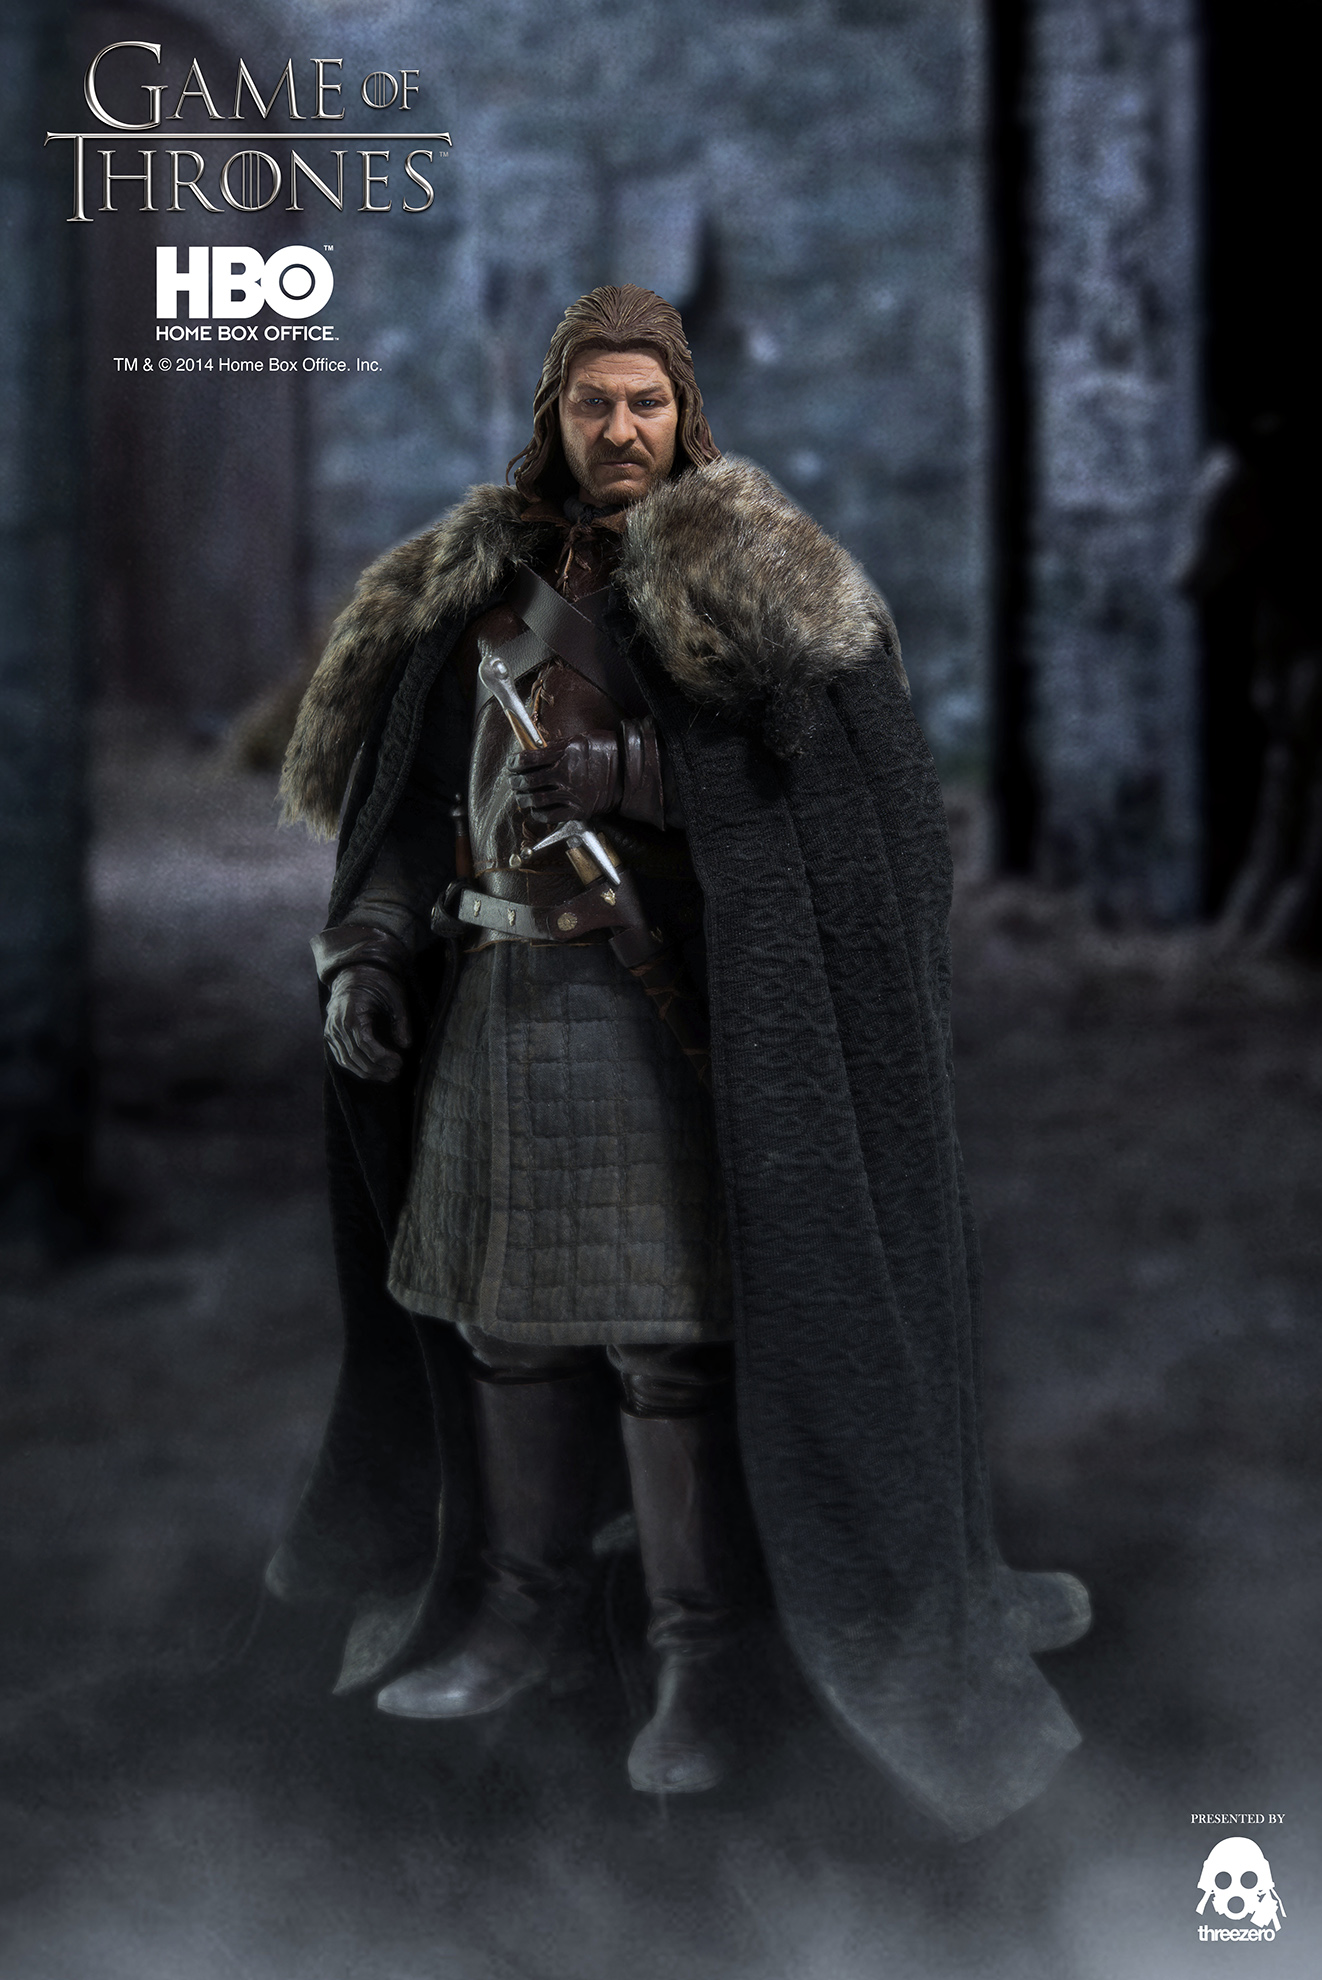 Will The Lord Of Winterfell Survive The Winter